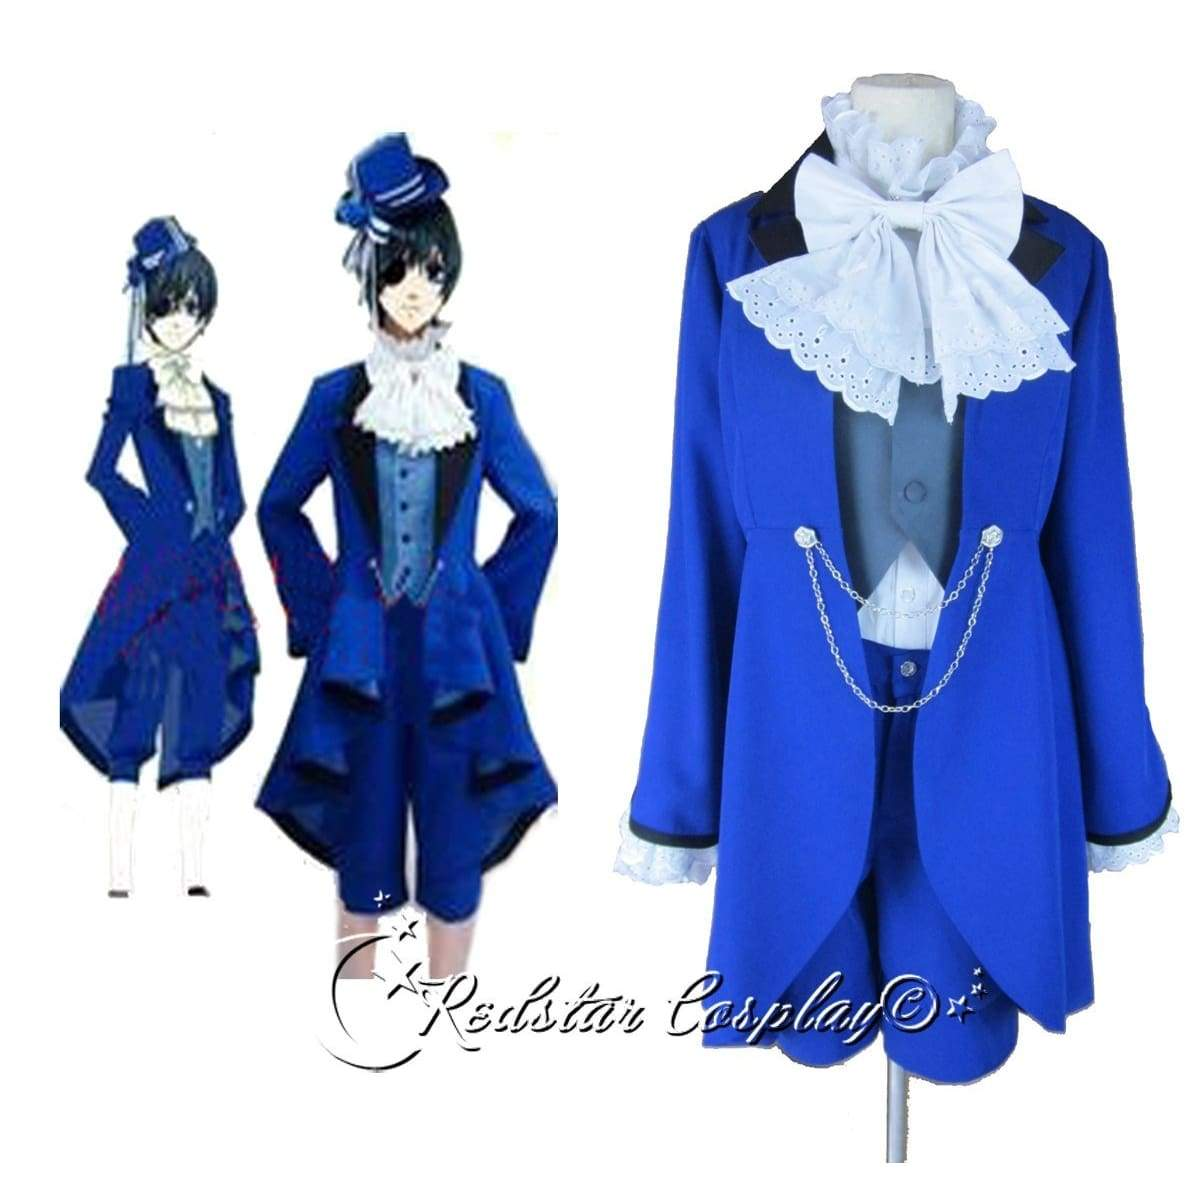 Kuroshitsuji Ciel Phantomhive Blue Cosplay Costume - Custom made in Any size - SpiritCos